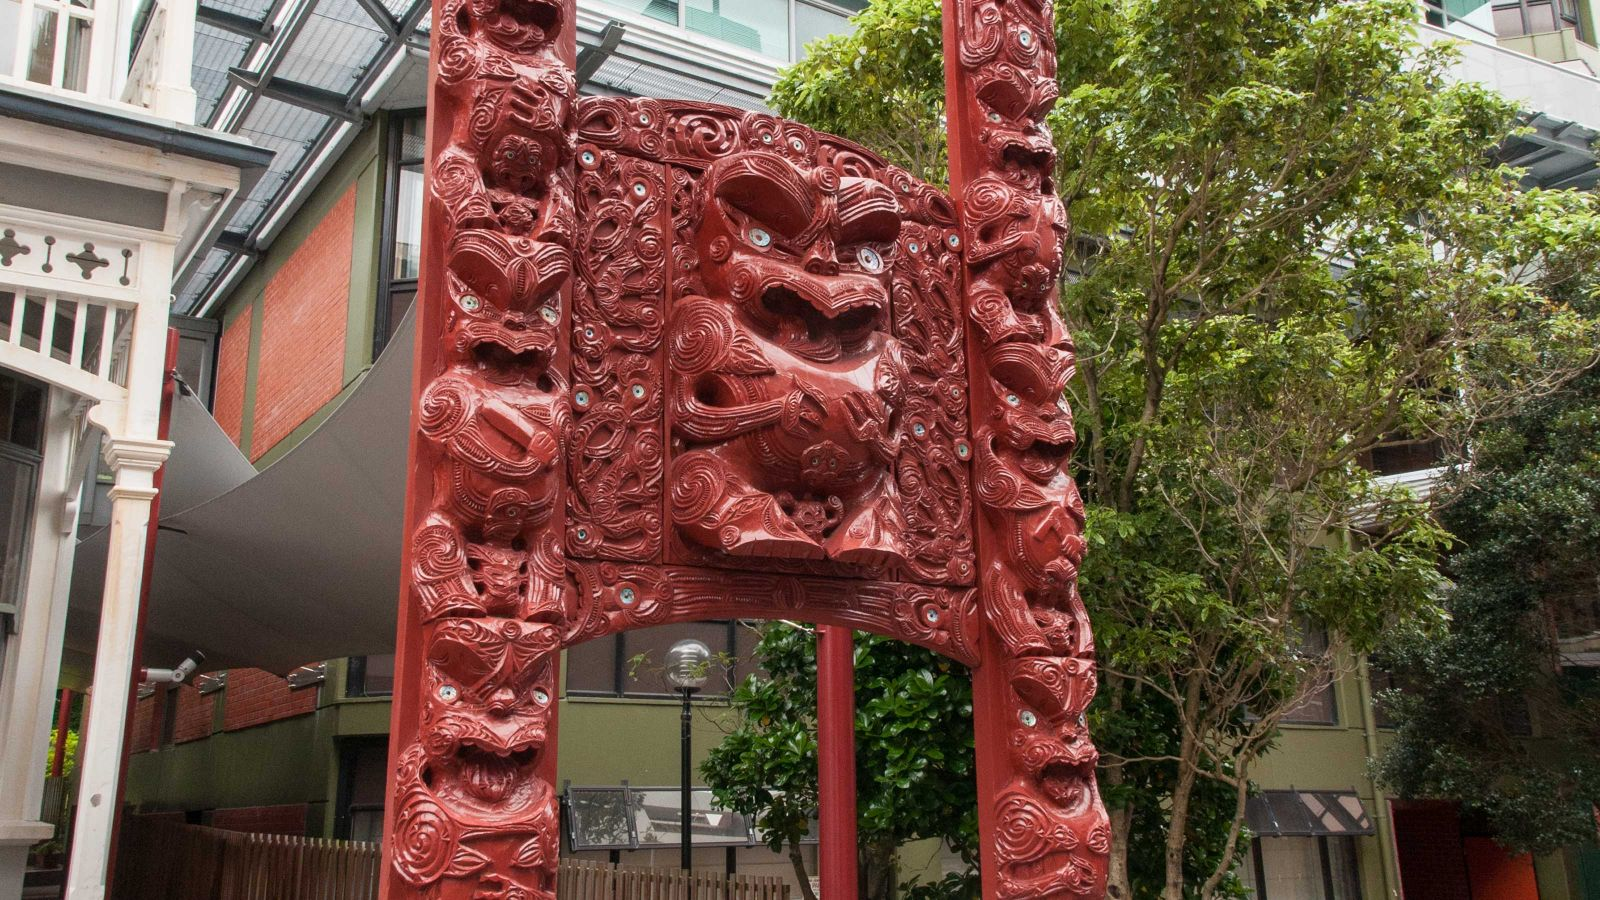 A tall red Māori carving with two pillars and a central section that opens with space at the bottom to allow for people to walk through.